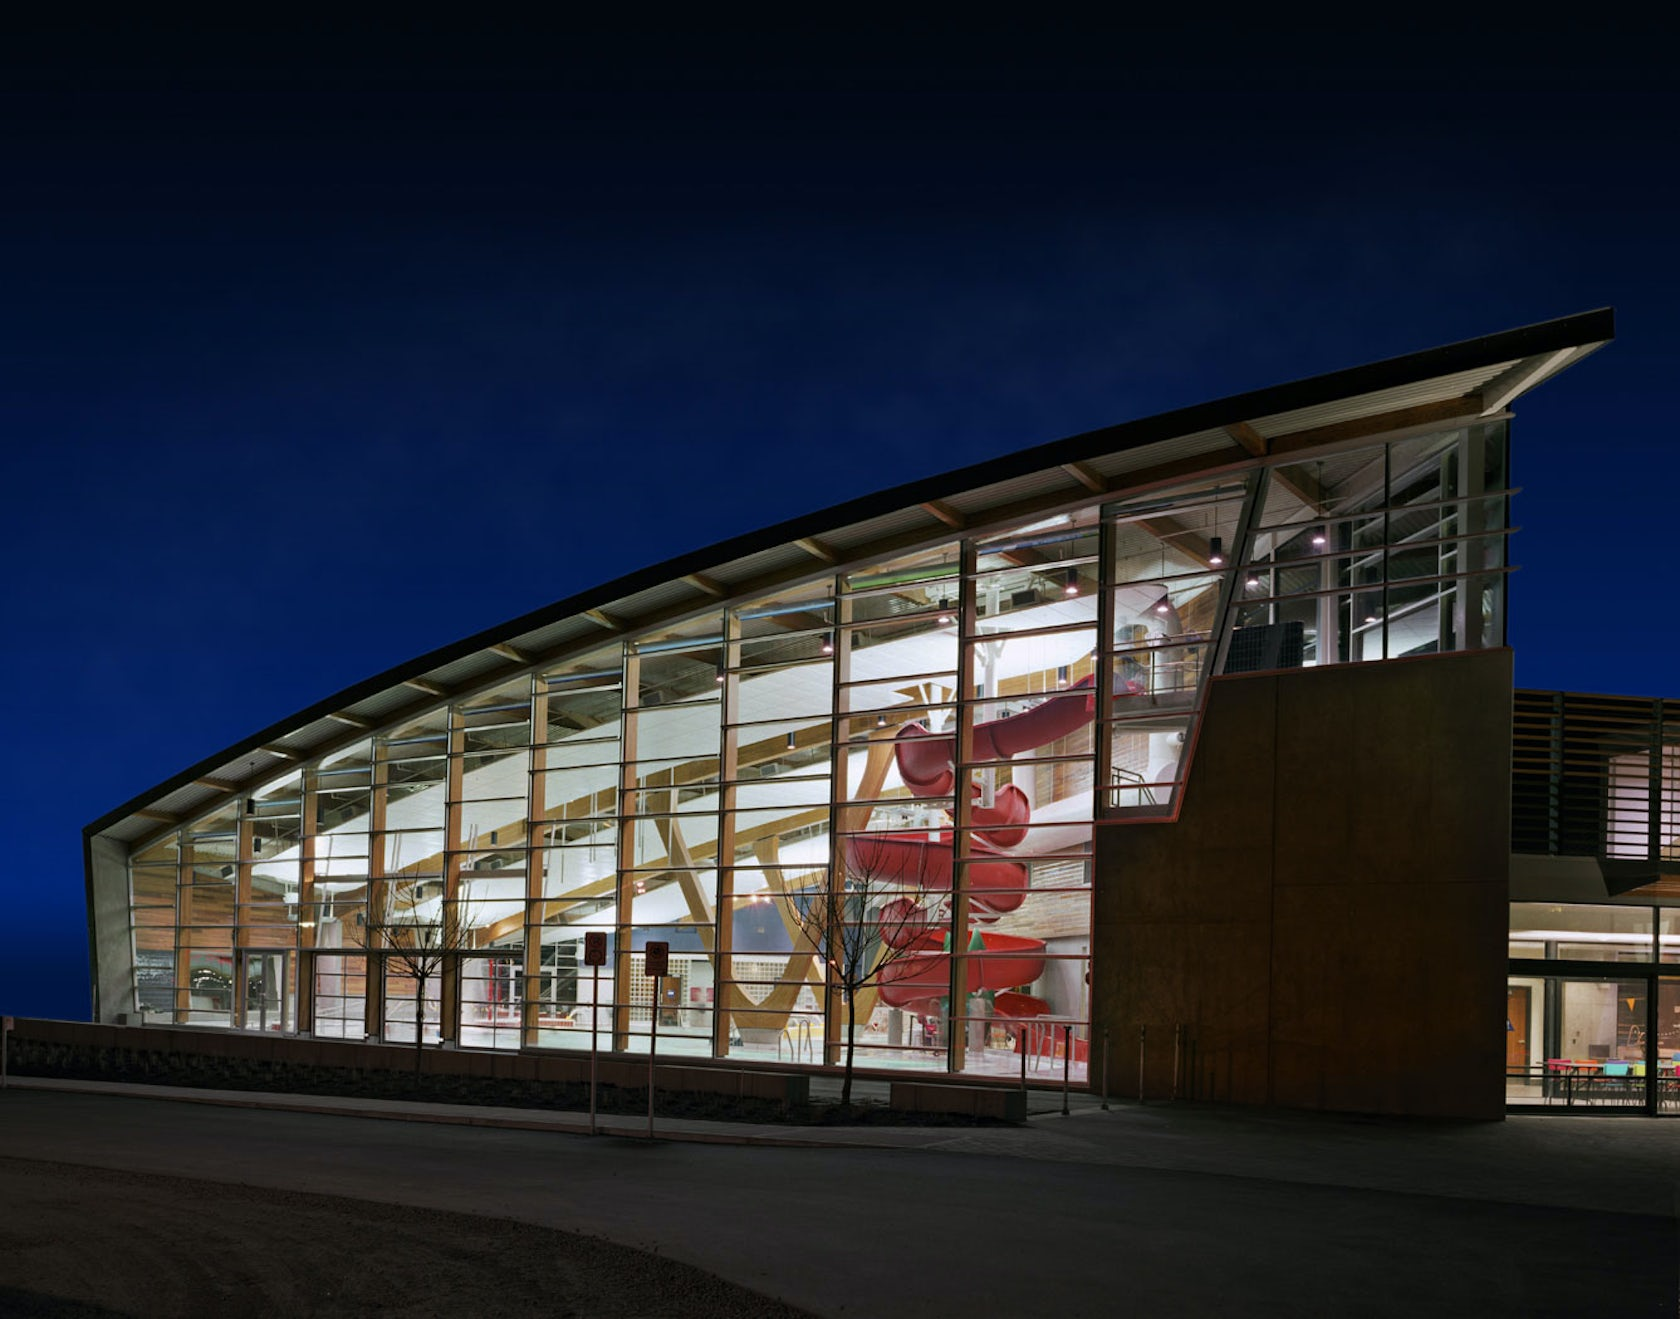 West vancouver aquatic centre architizer for Swimming pools public vancouver